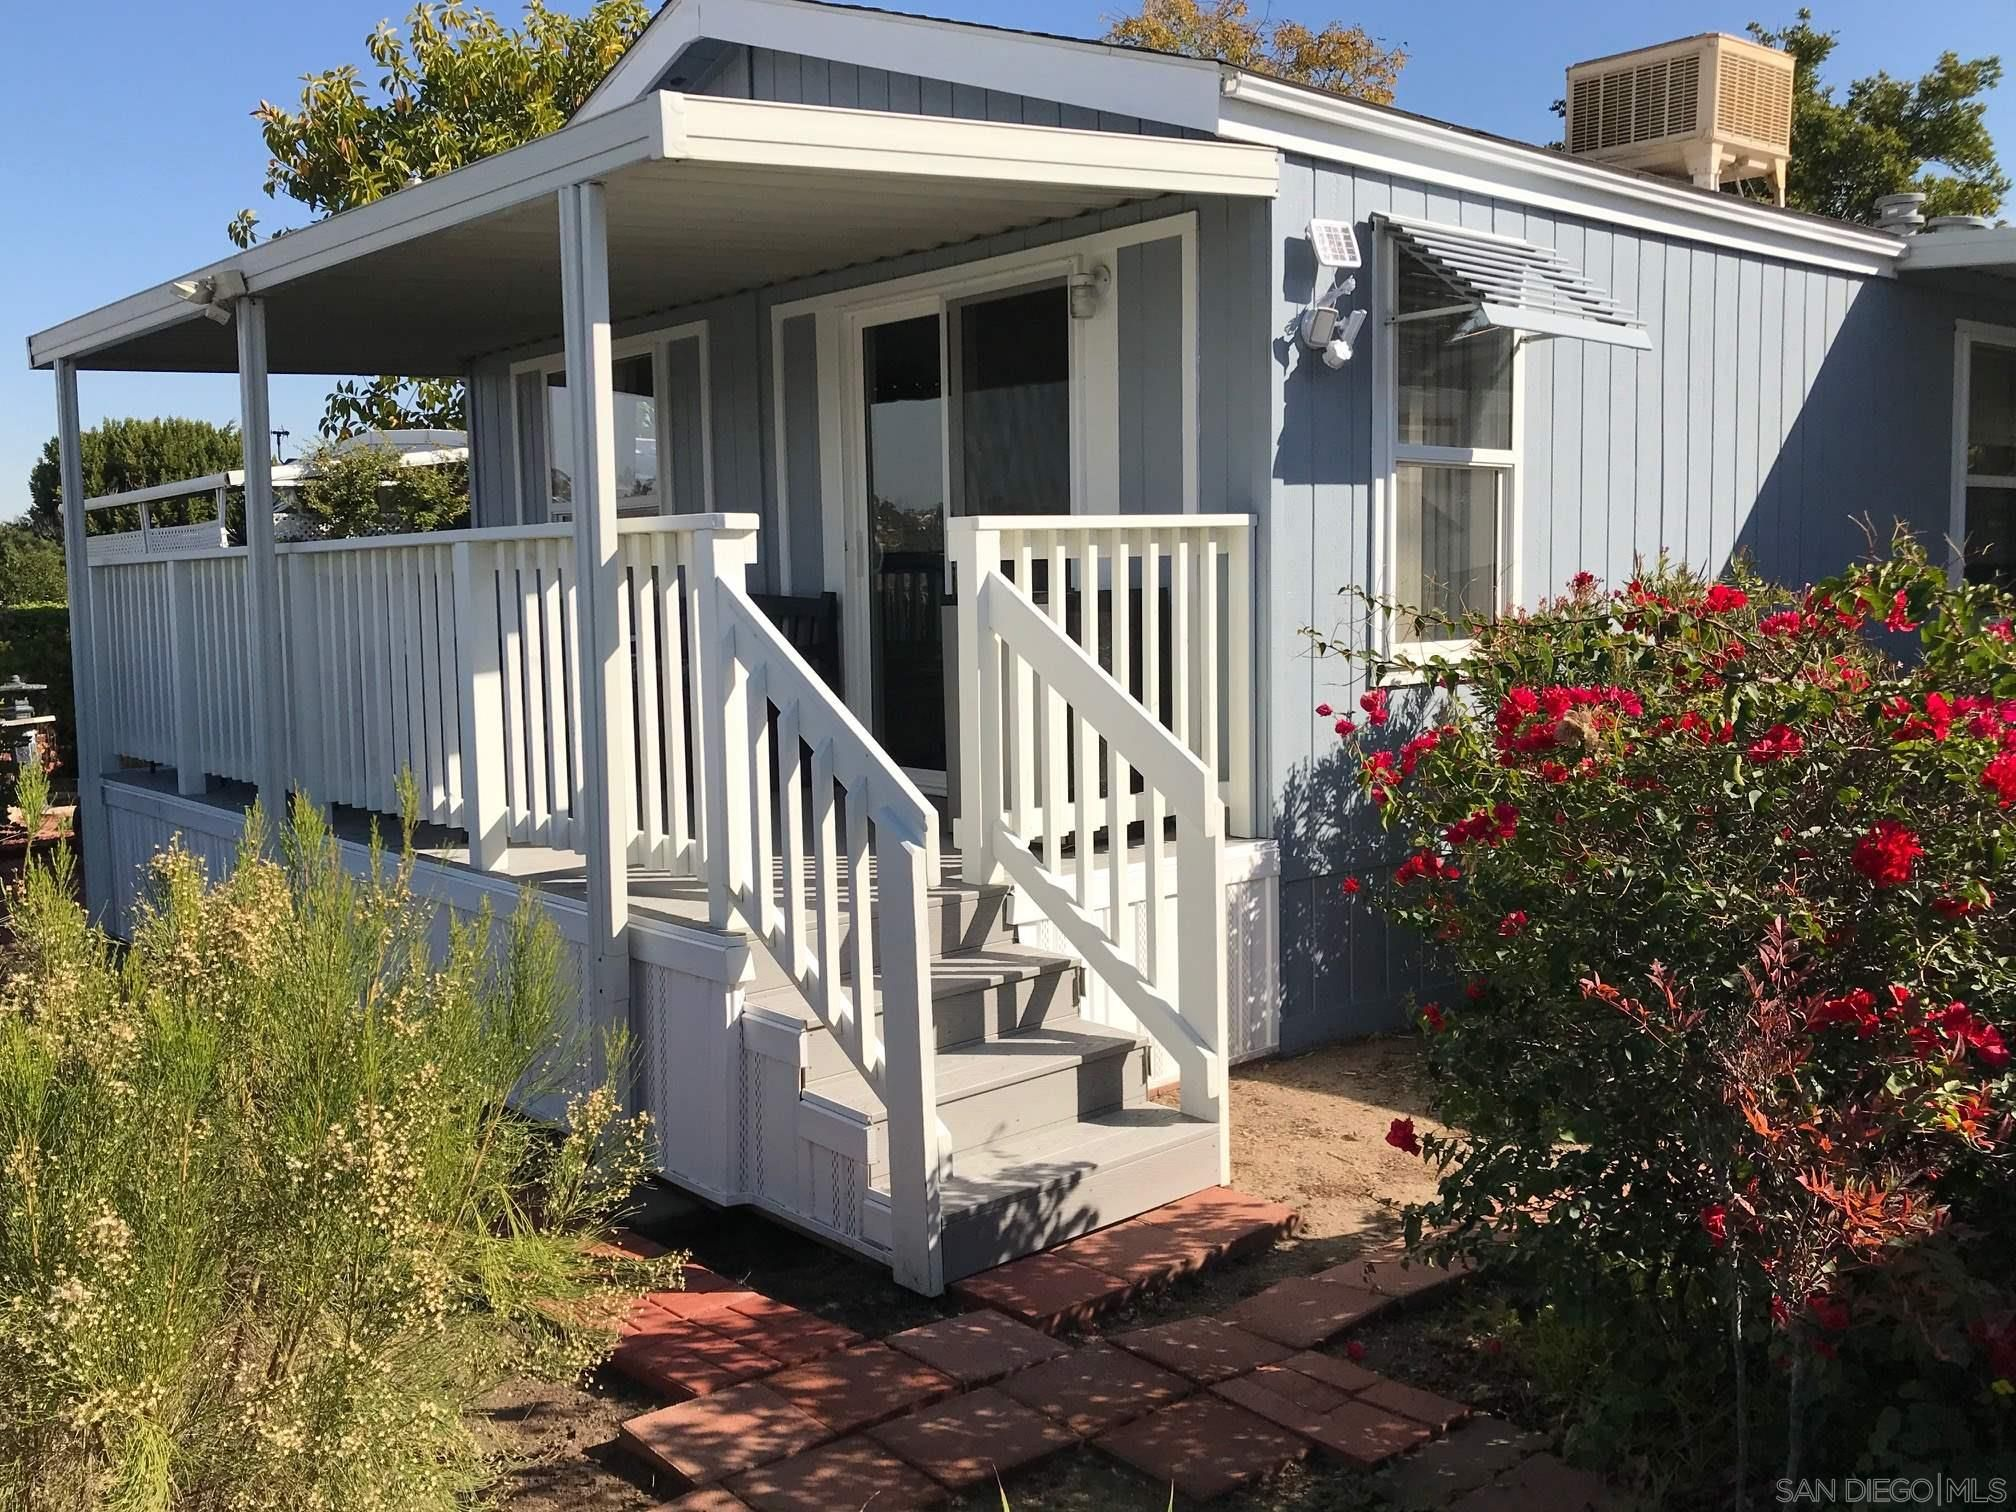 Main Photo: SAN DIEGO Manufactured Home for sale : 2 bedrooms : 4792 1/2 Old Cliffs Rd.